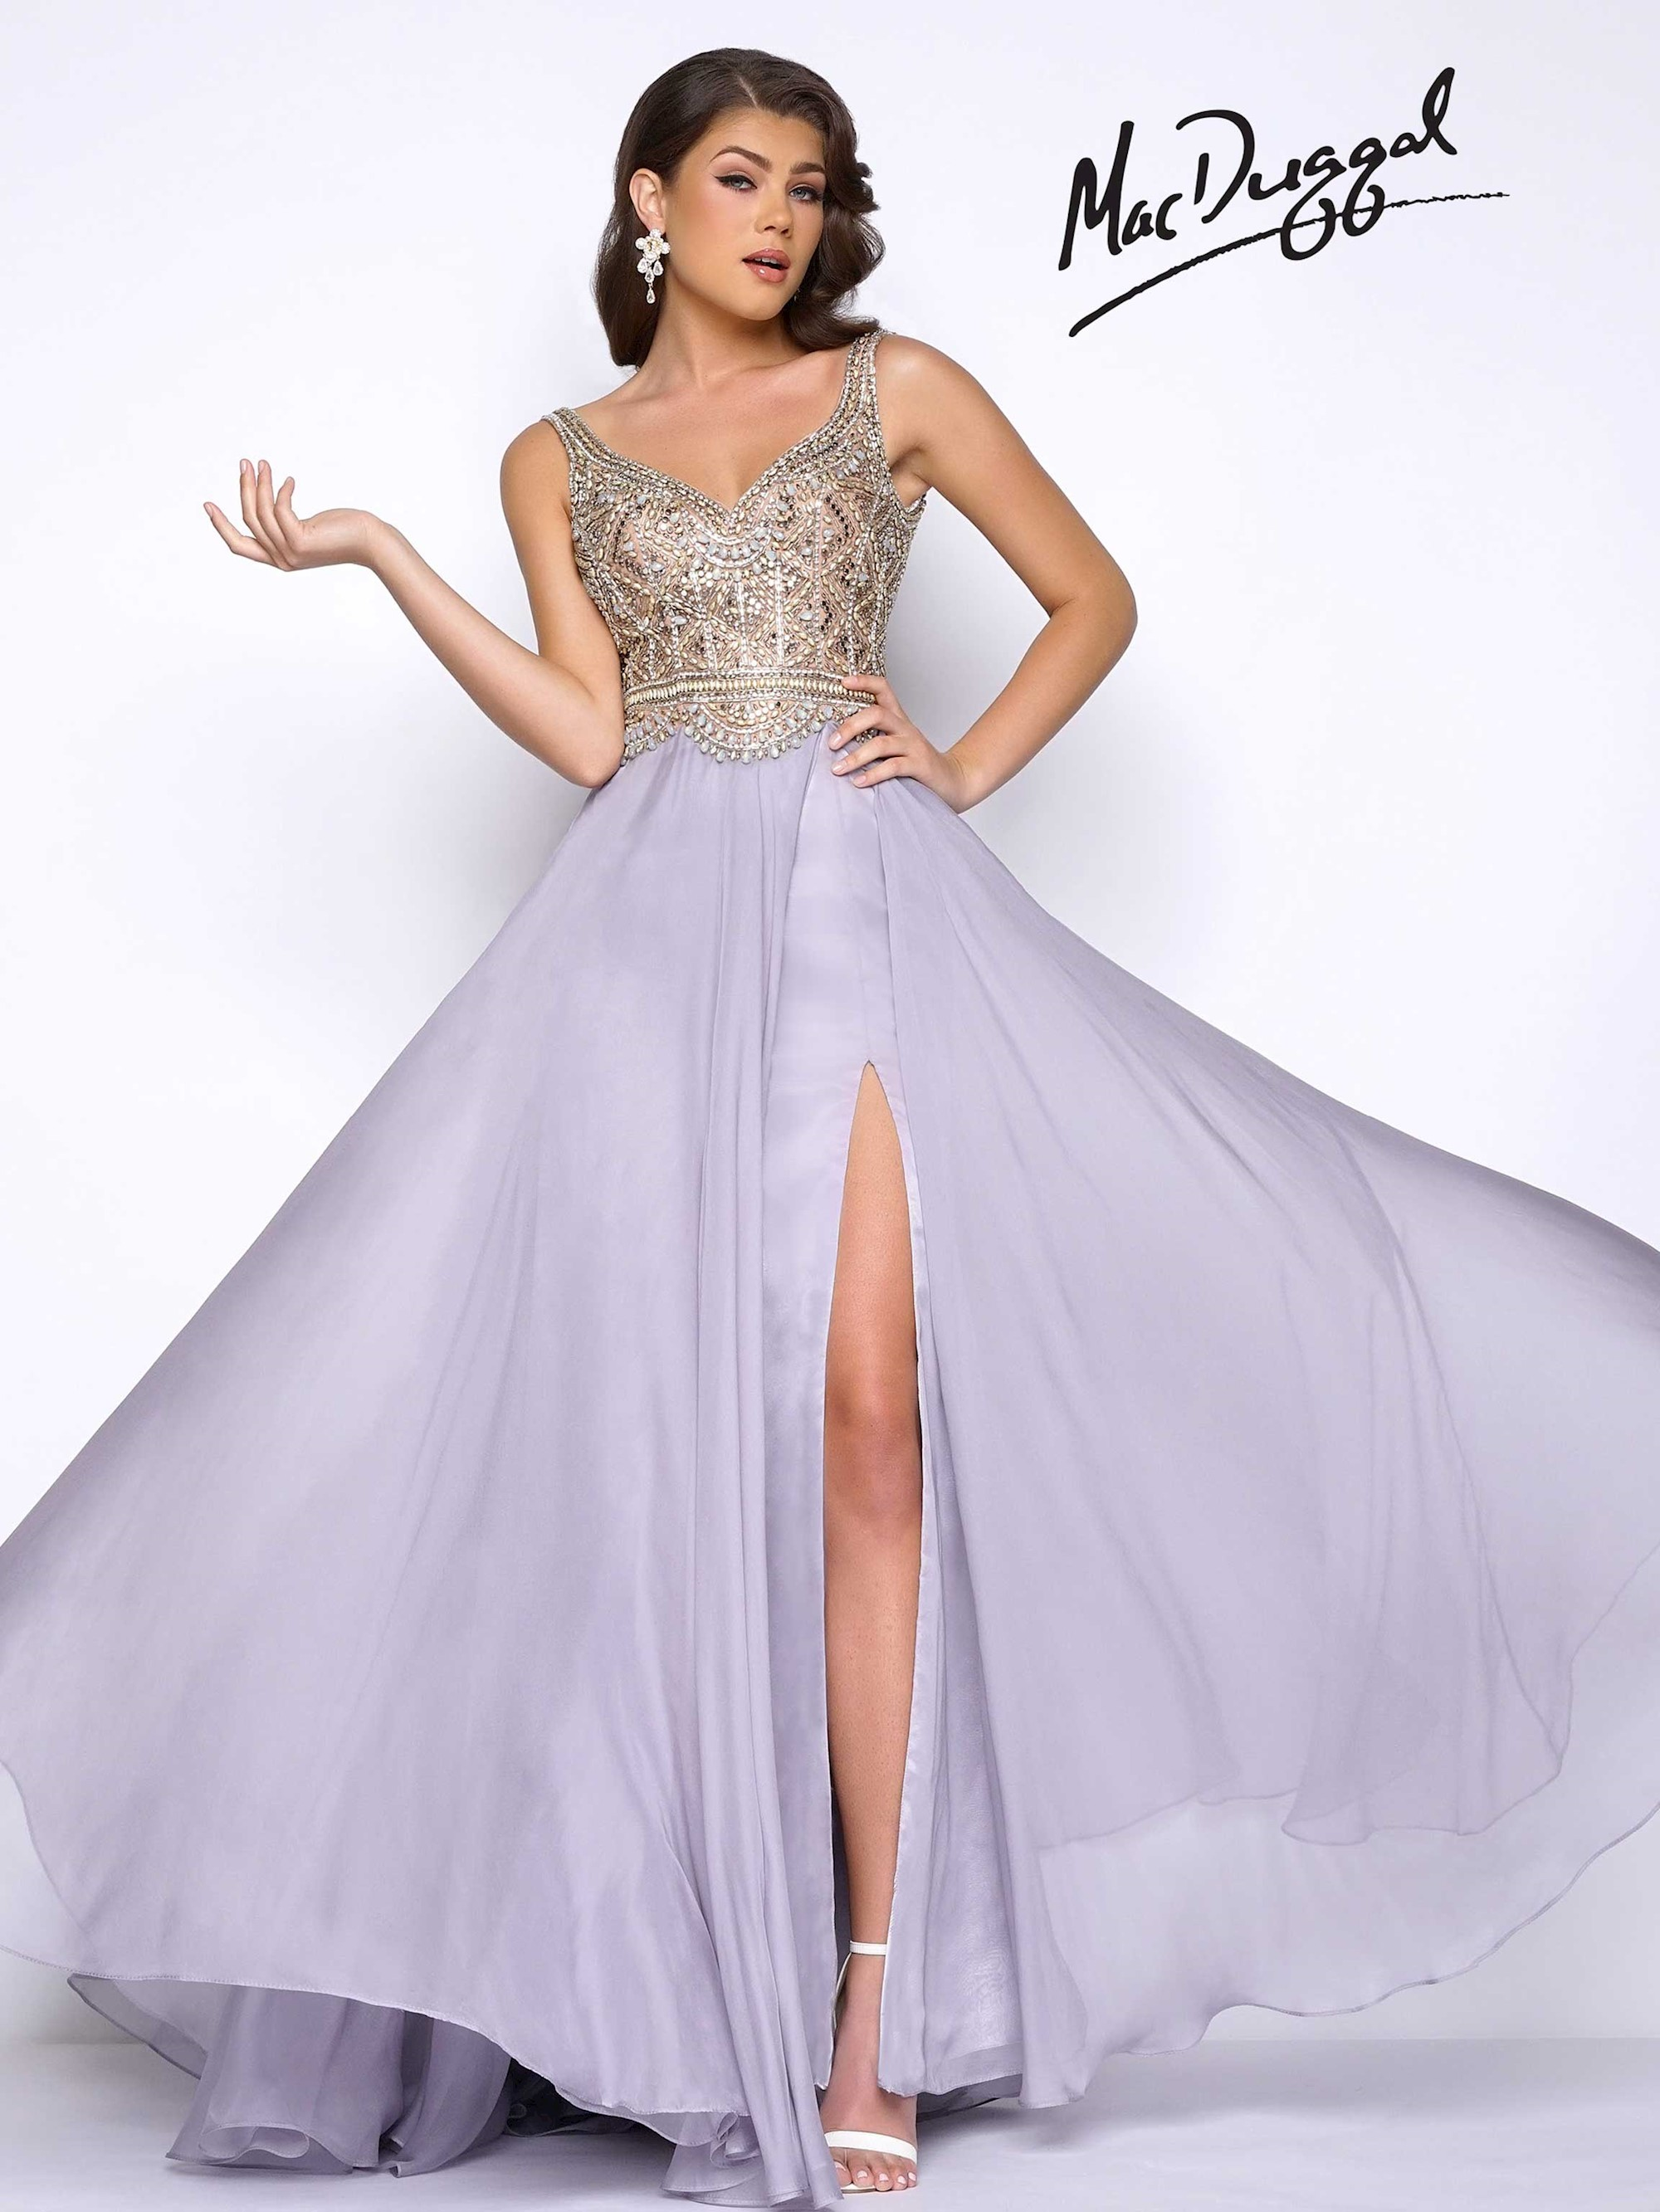 Unique lady designer prom and bridal dresses and gowns in mac duggal 65885m ombrellifo Images